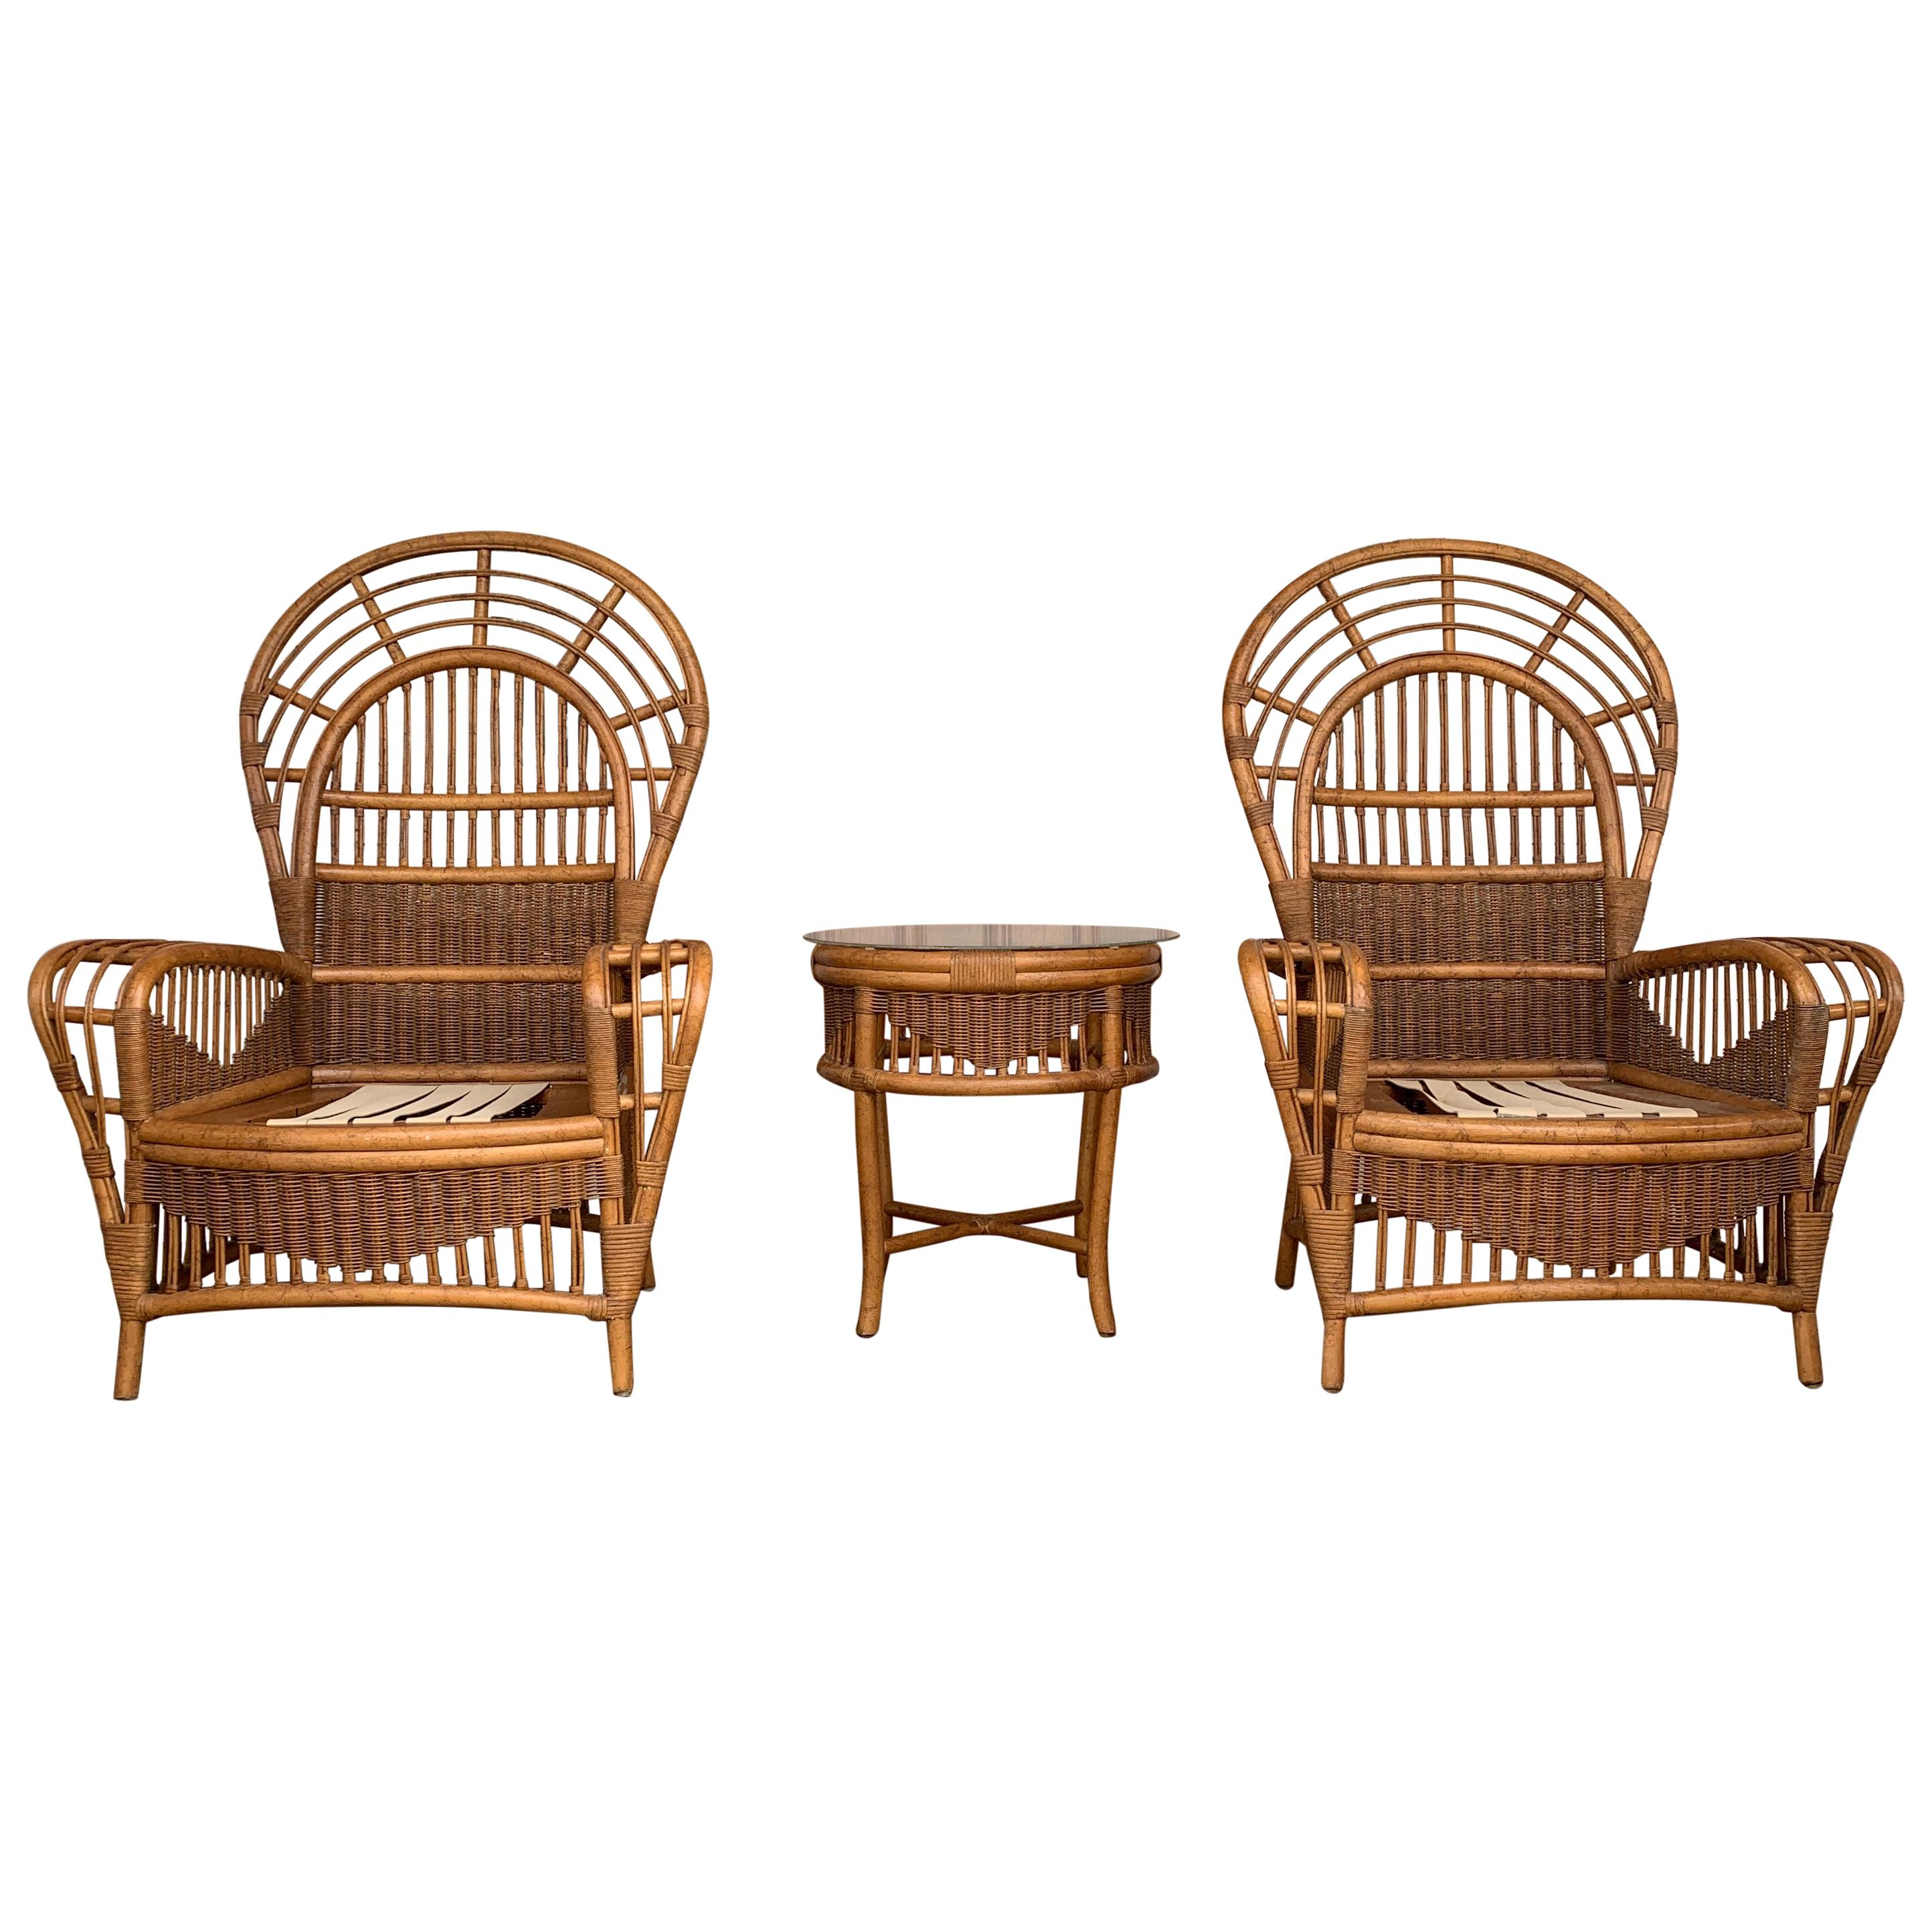 Midcentury Ficks Reed Rattan Chairs and Table